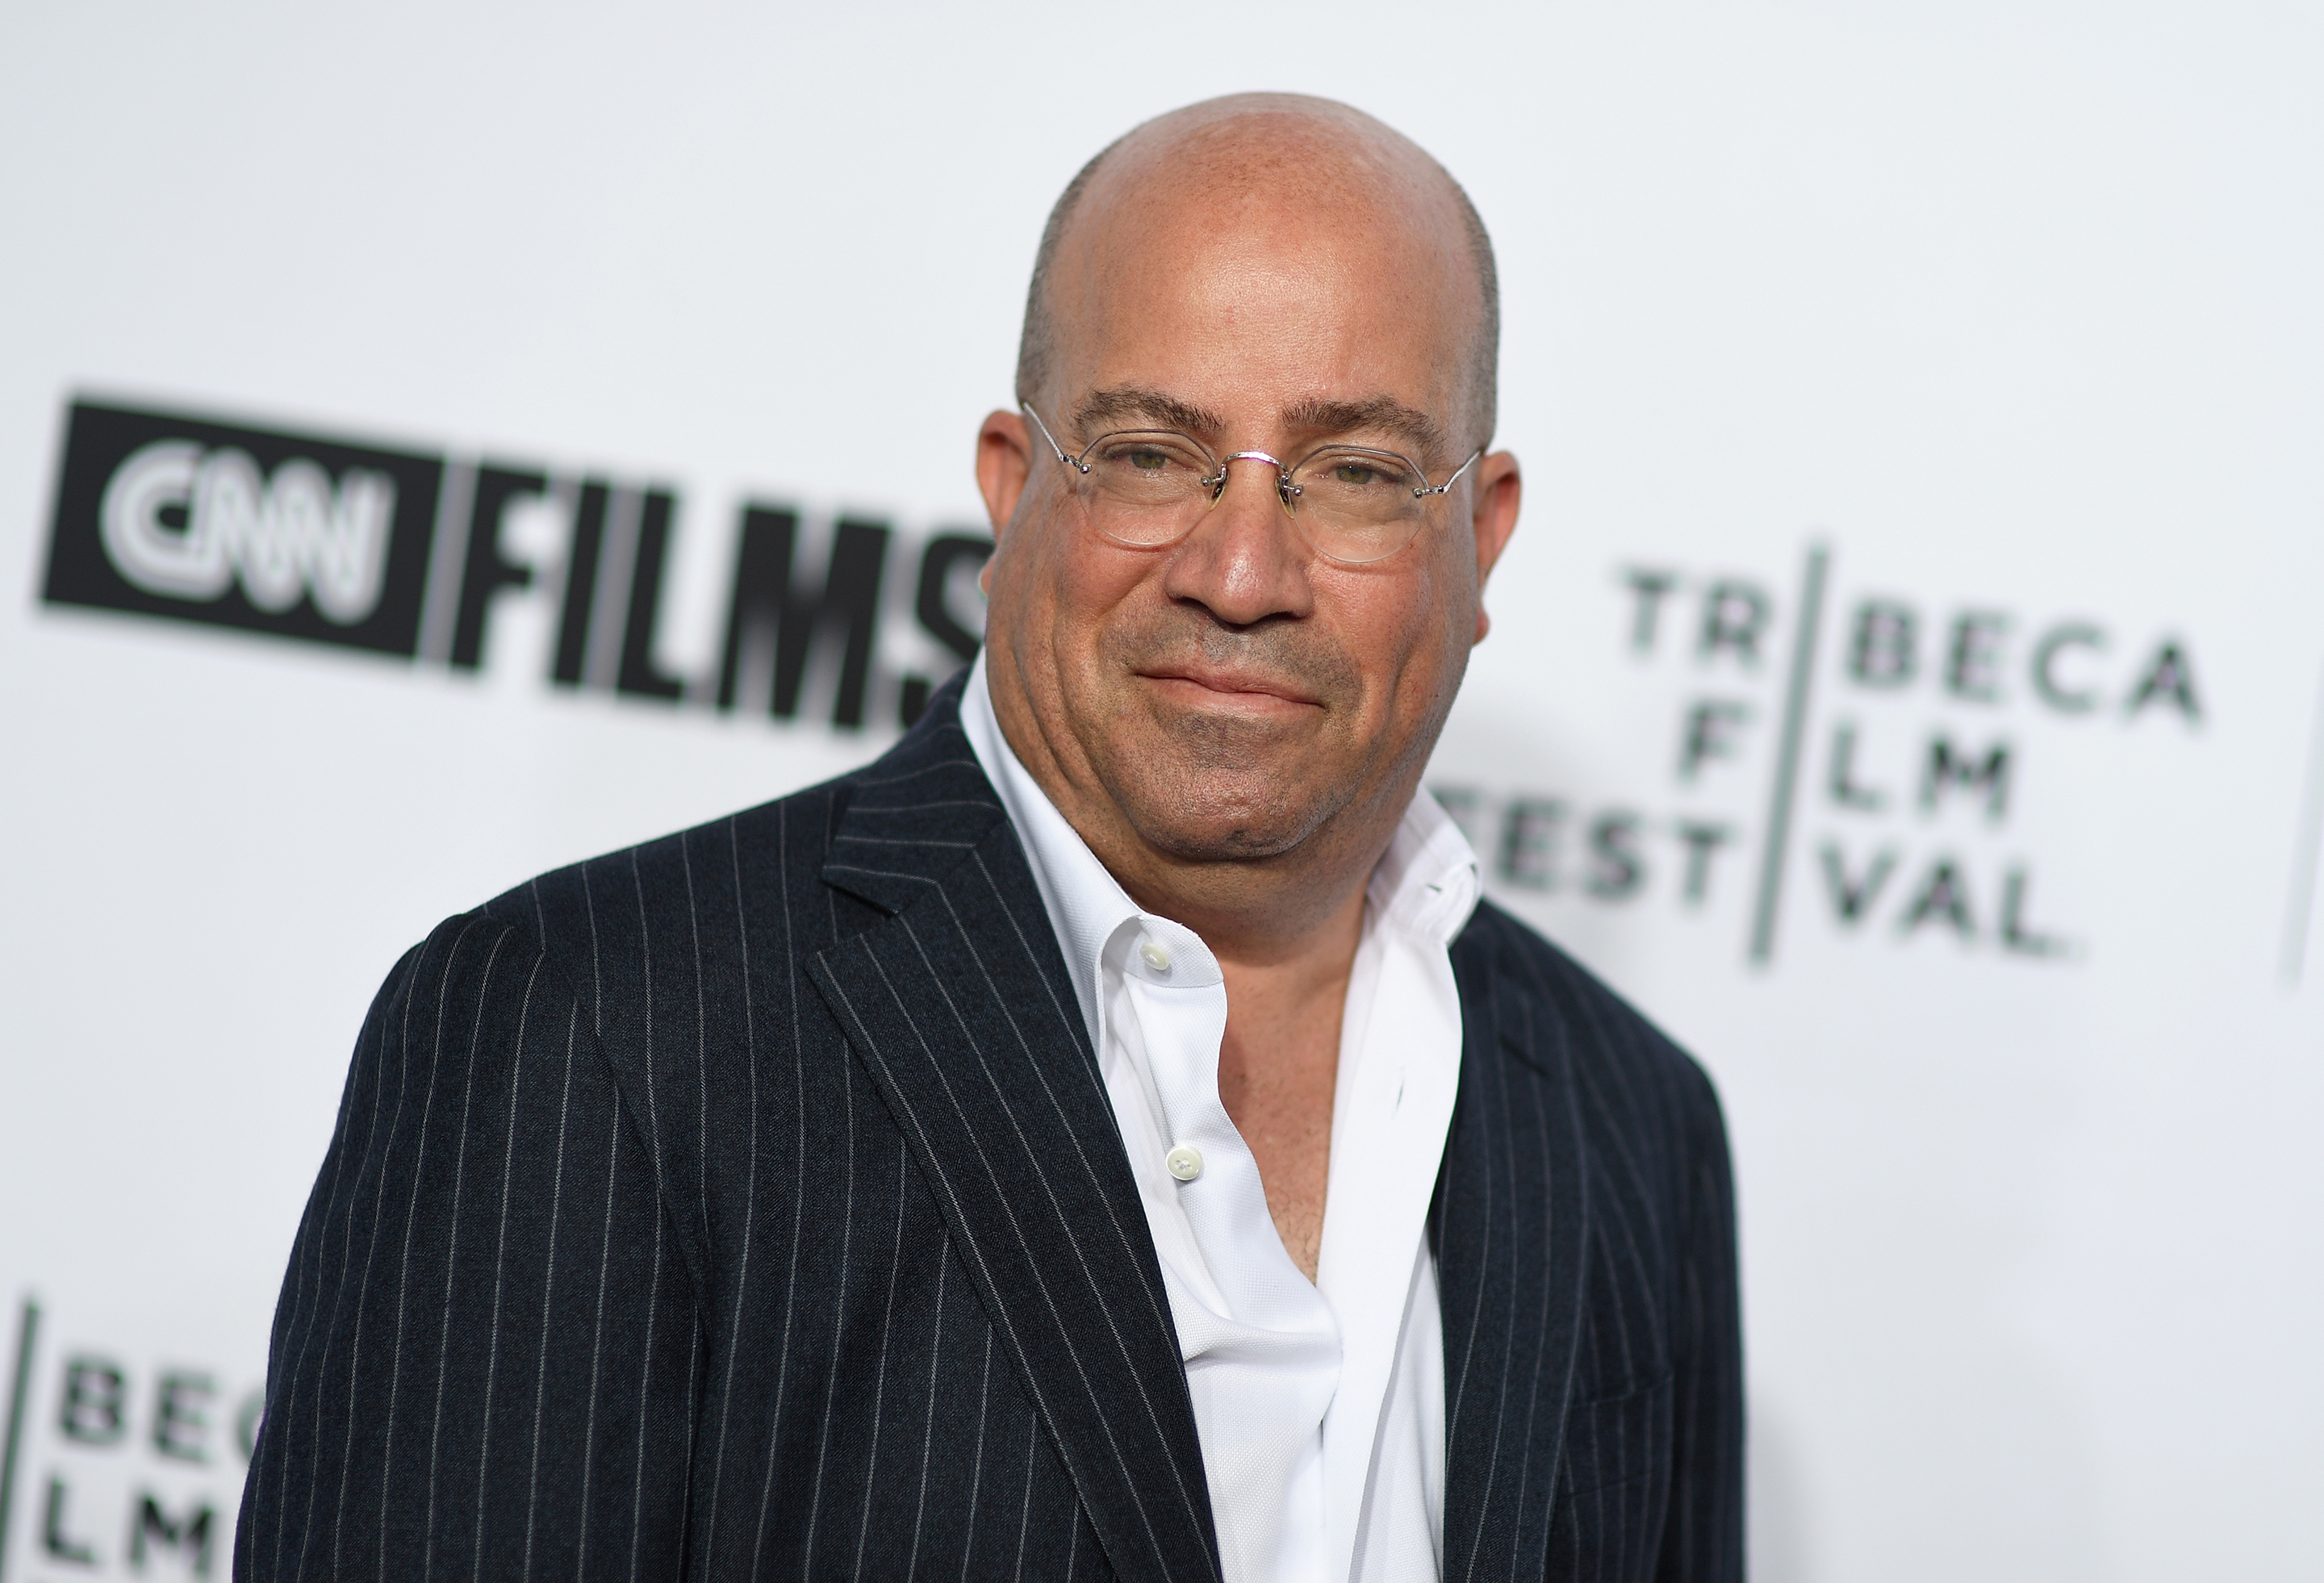 jeff-zucker-cnn-heart-surgery